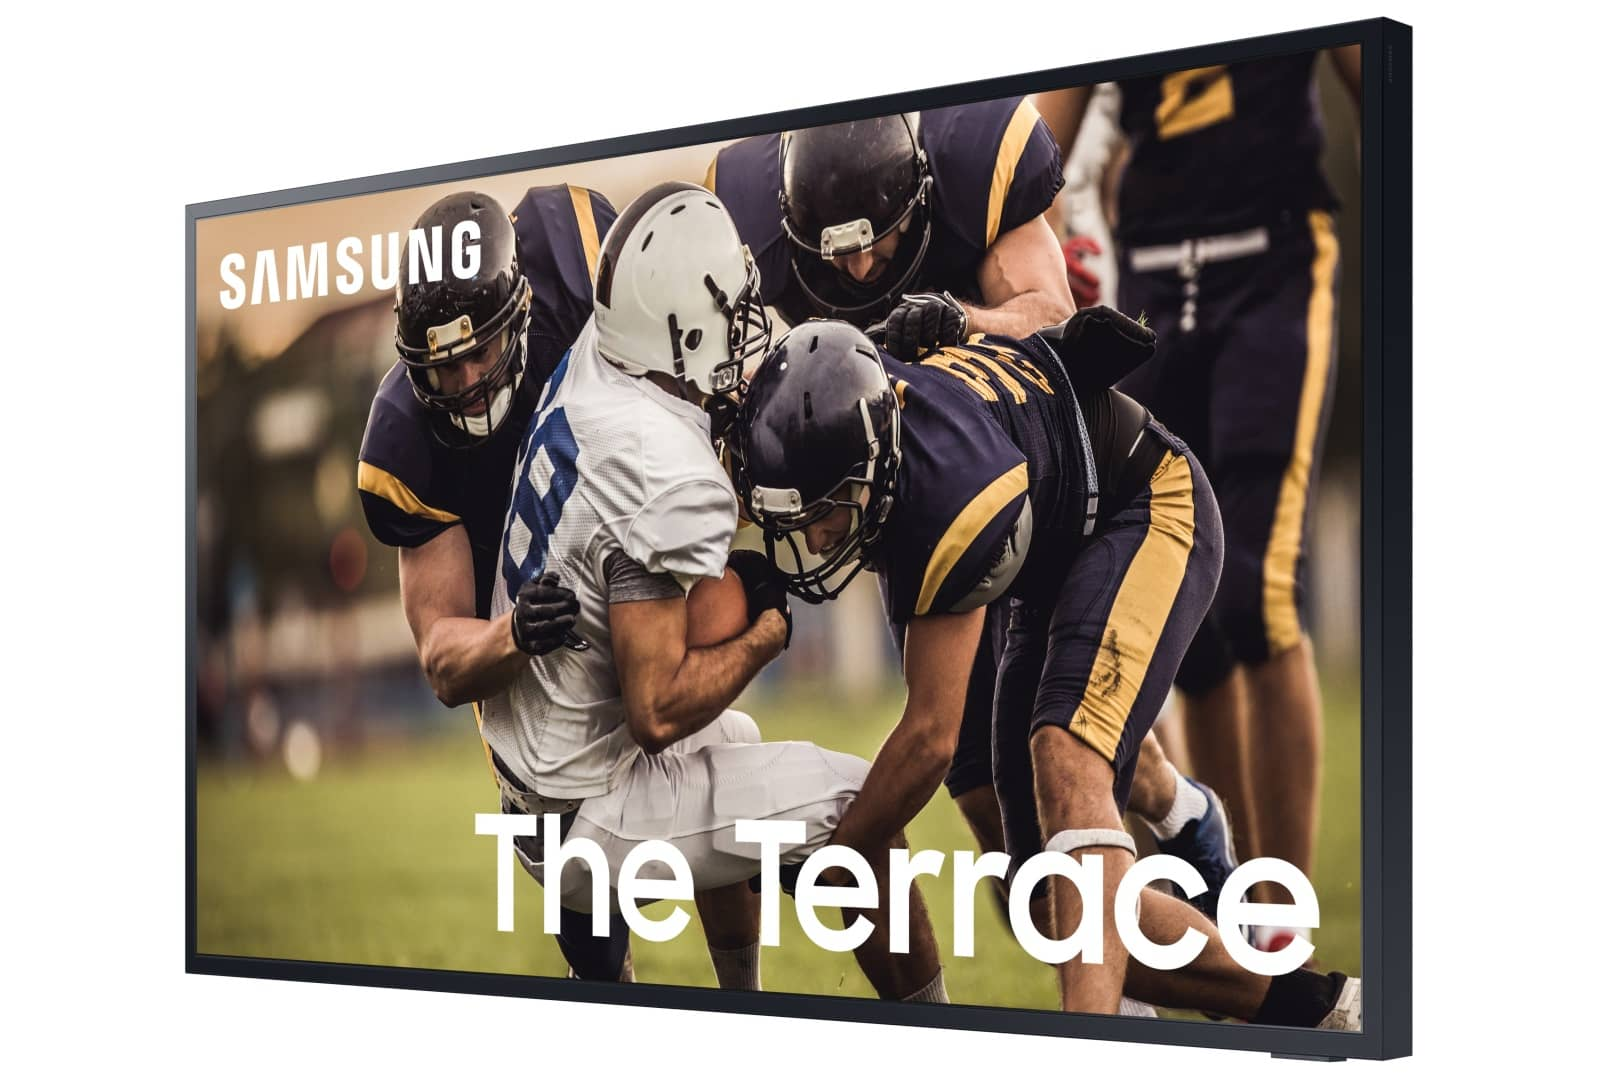 Samsung Terrace TV obr5